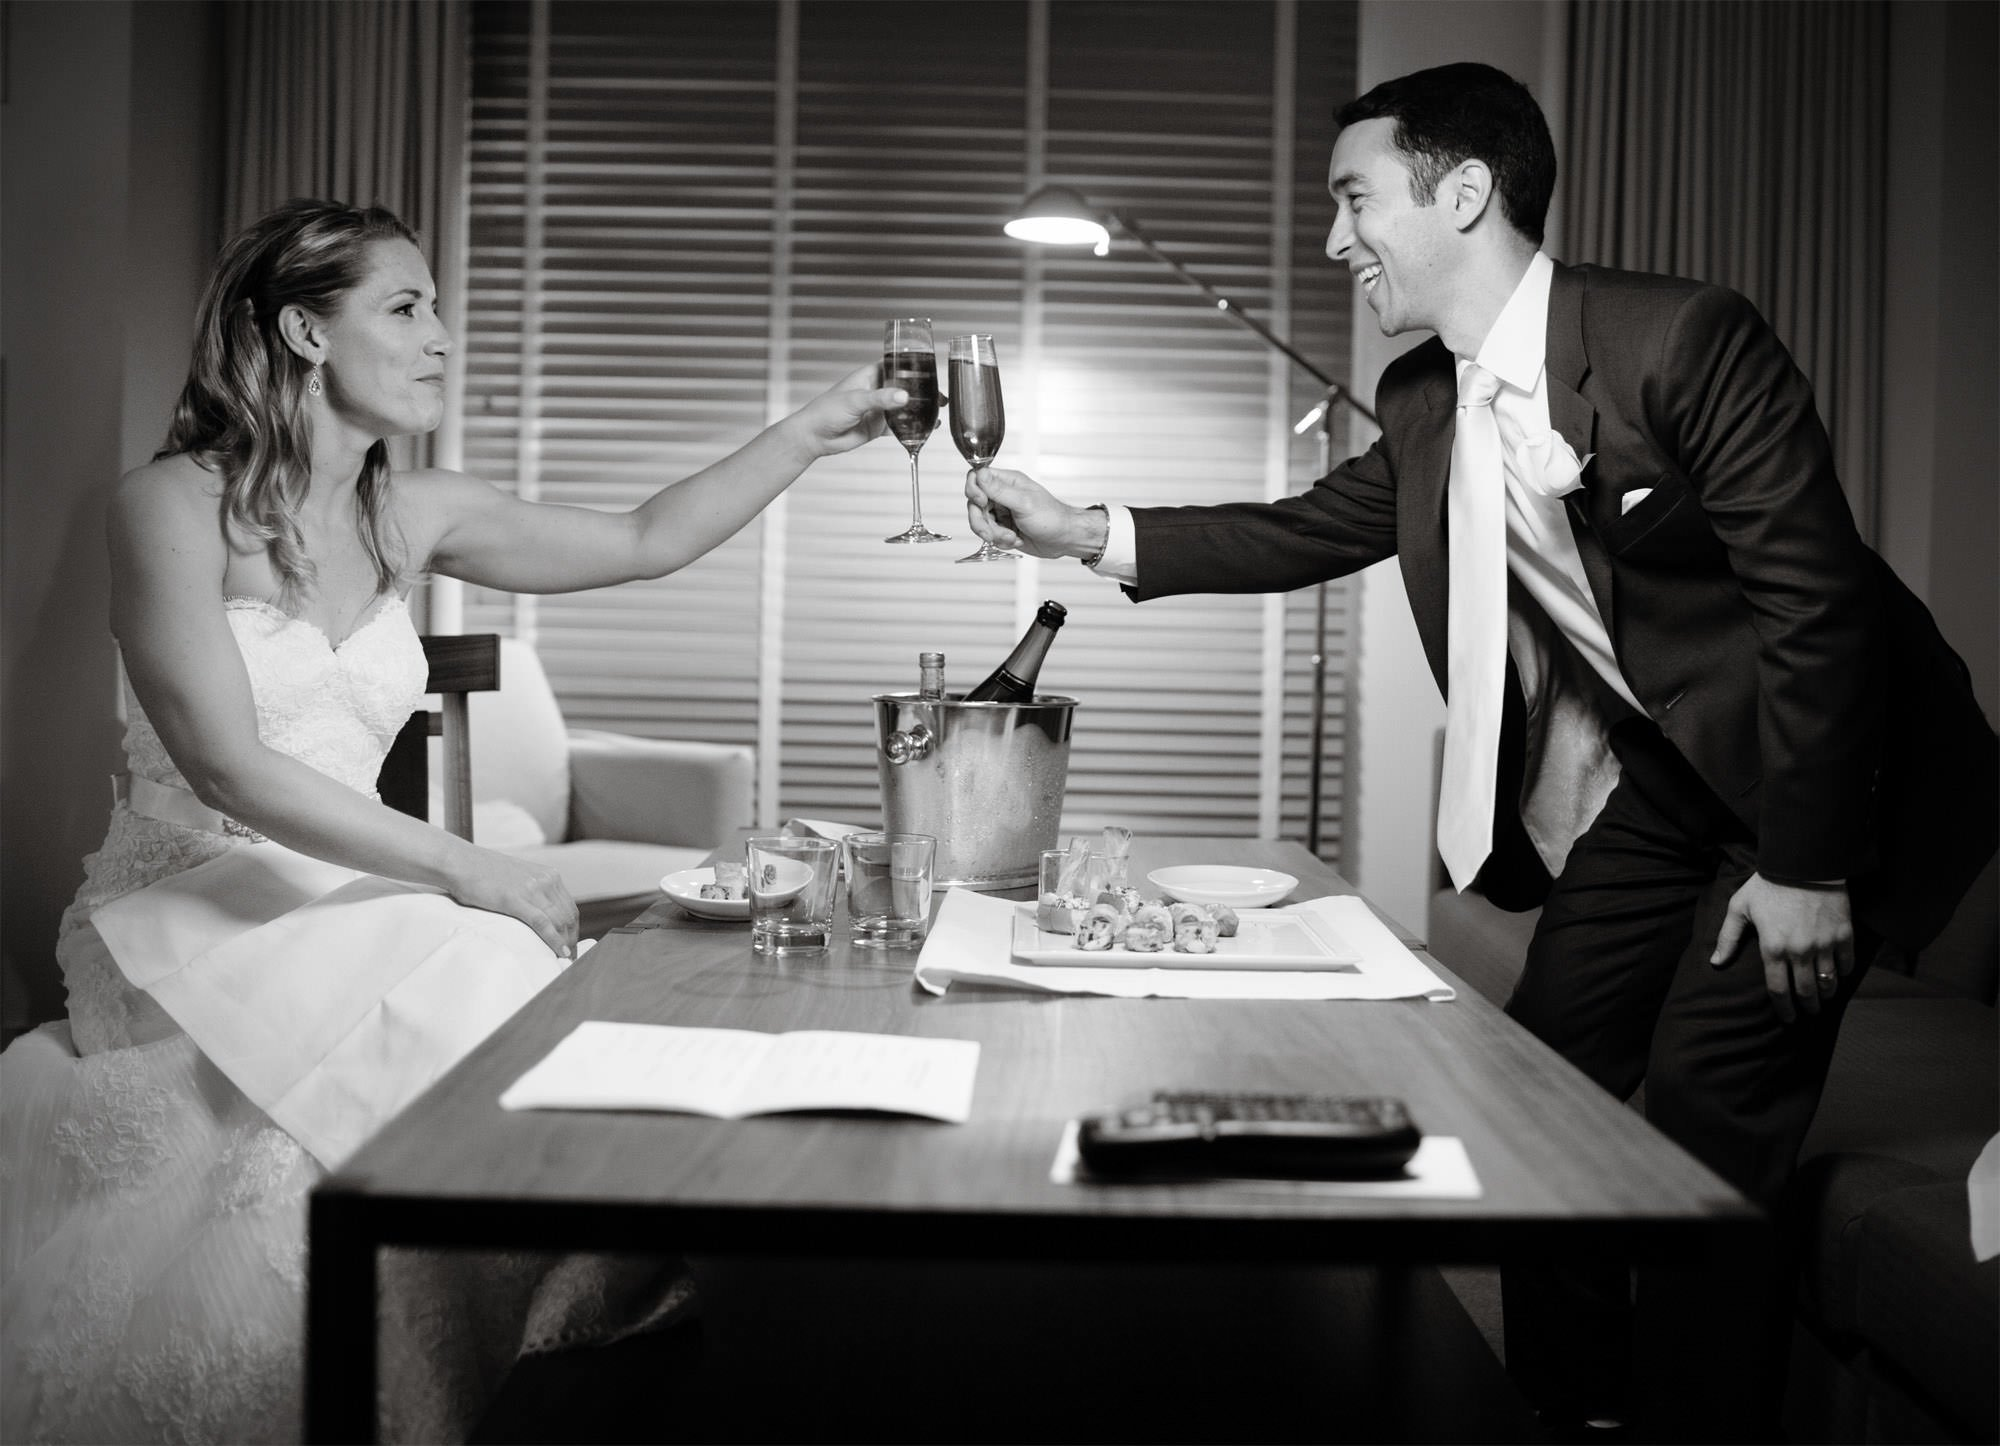 The couple toasts during a private moment following their wedding ceremony at the Park Hyatt in Washington DC.